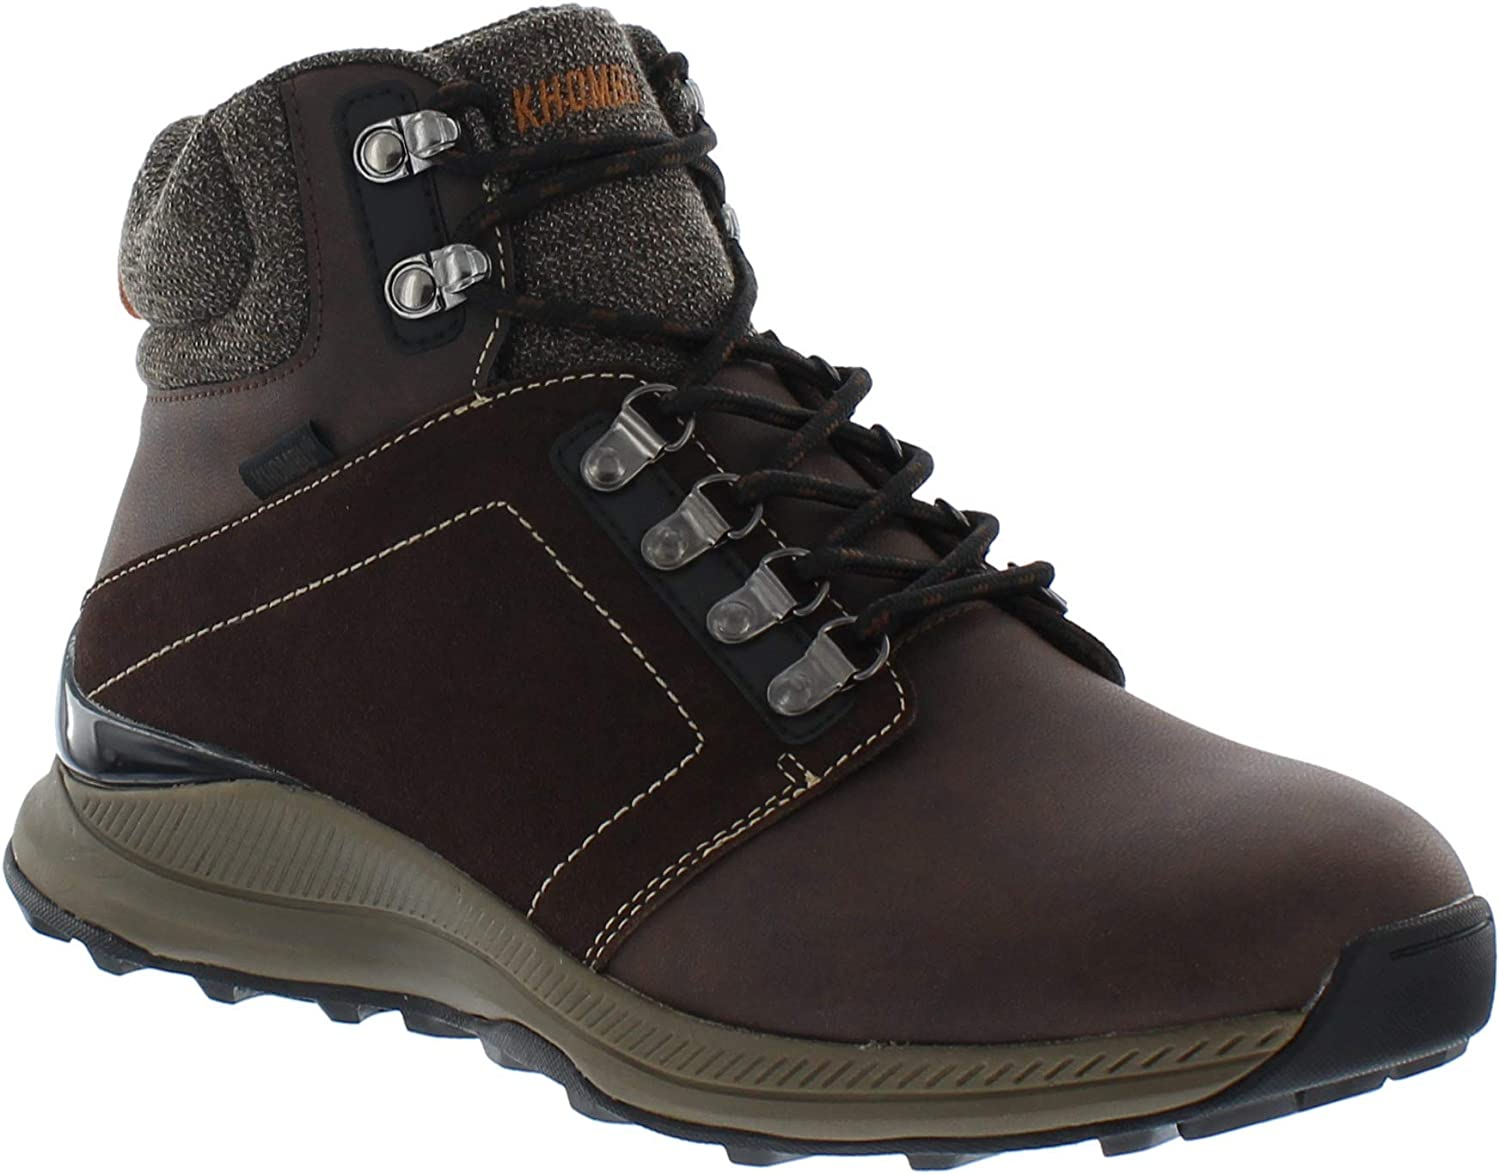 Khombu Men s Nelix Hiking Boots